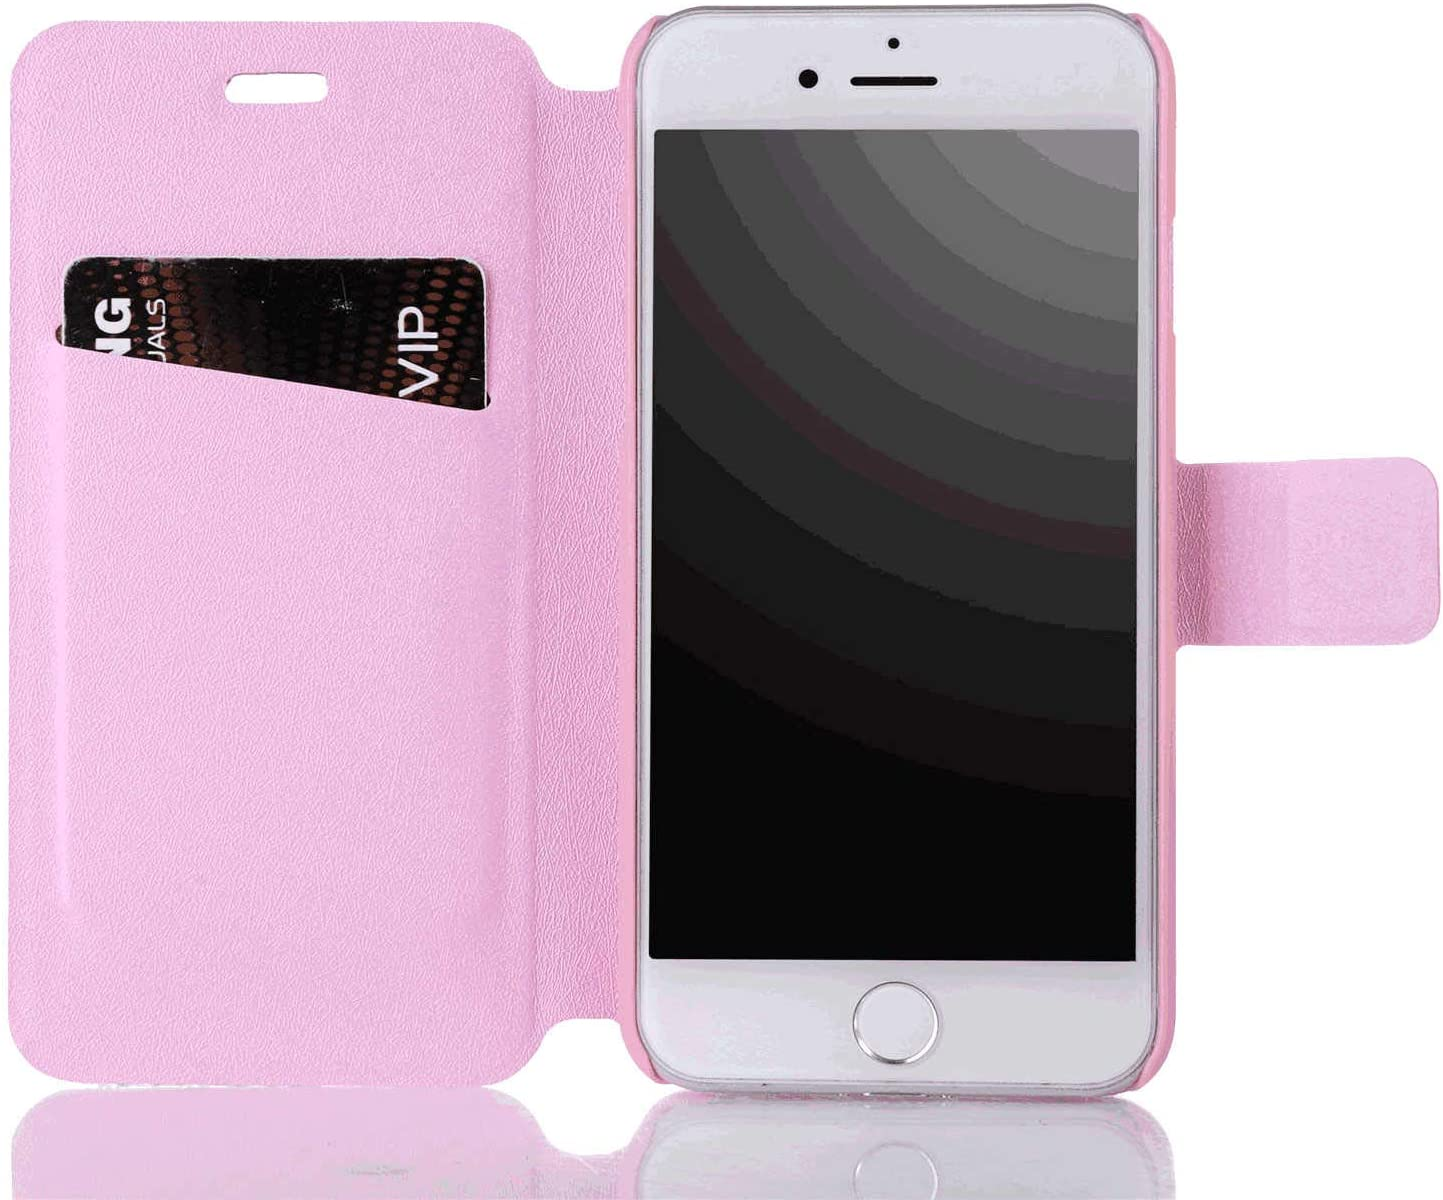 Cover for Leather Kickstand Card Holders Extra-Protective Business Cell Phone case Flip Cover iPhone 11 Pro Max Flip Case